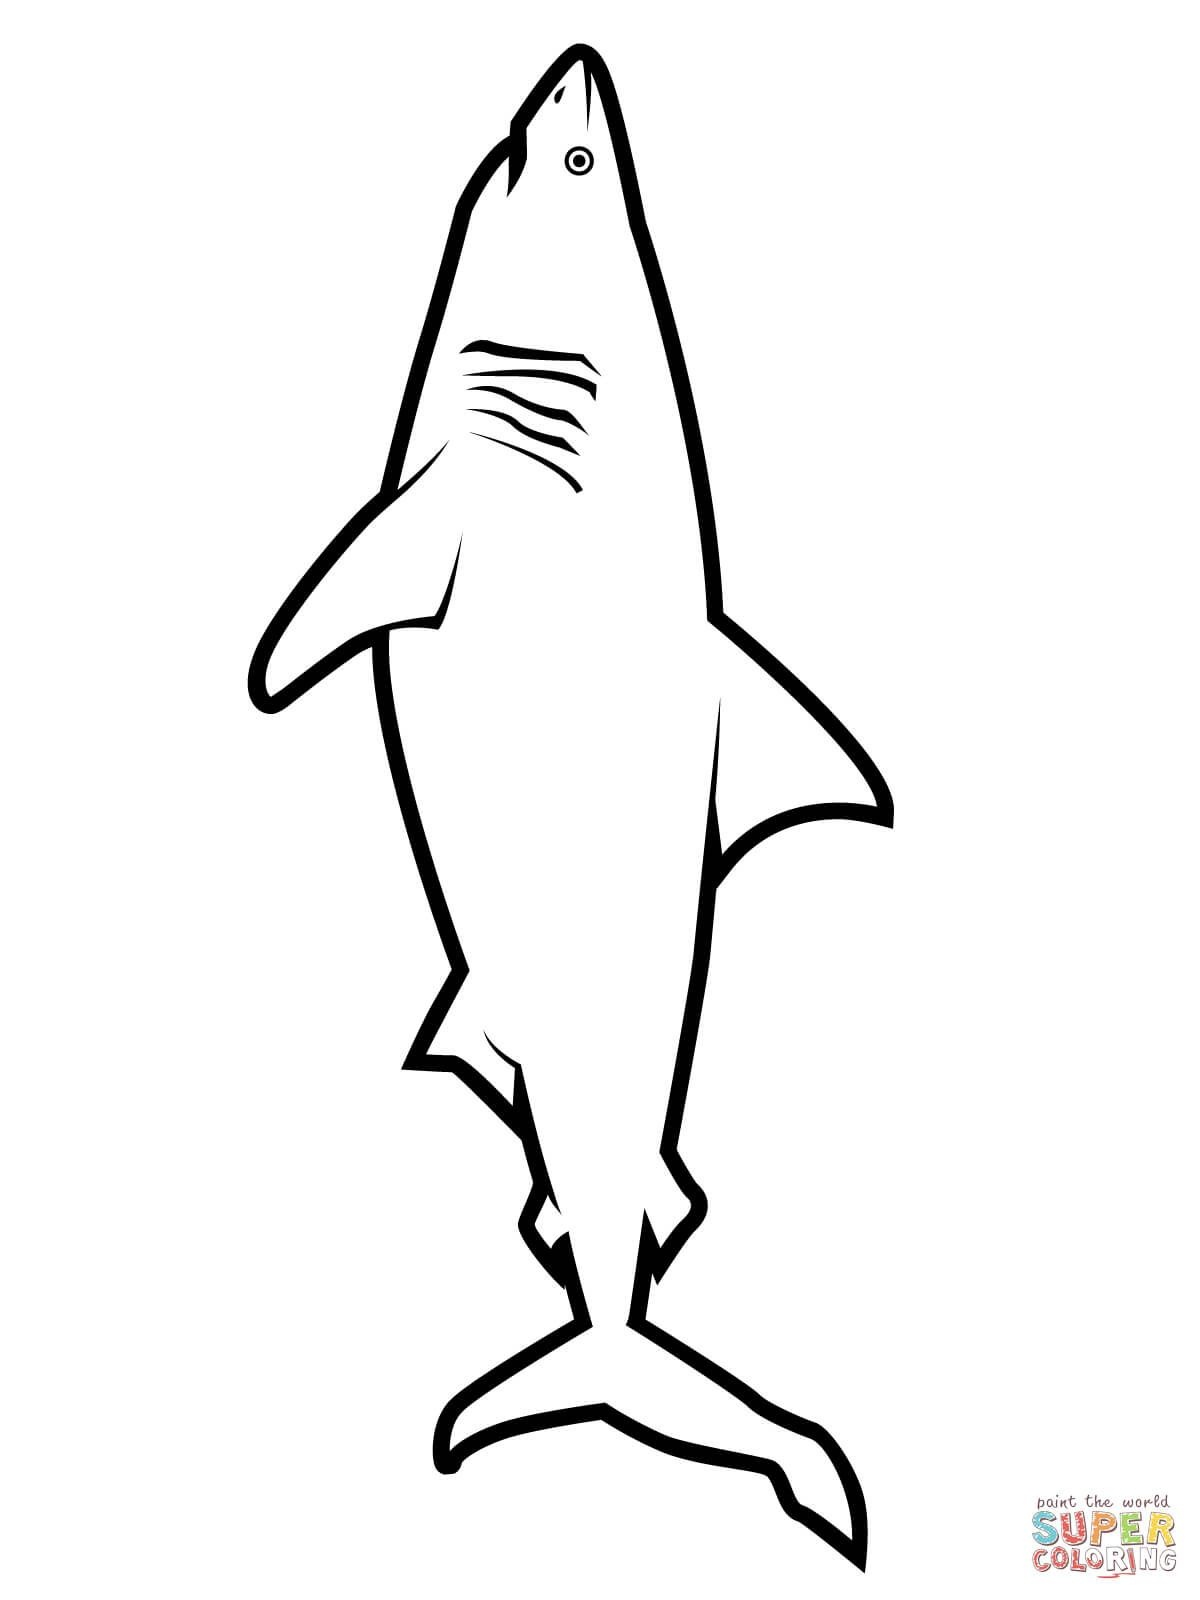 Realistic Great White Shark Coloring Page | Free Printable Coloring - Free Printable Great White Shark Coloring Pages